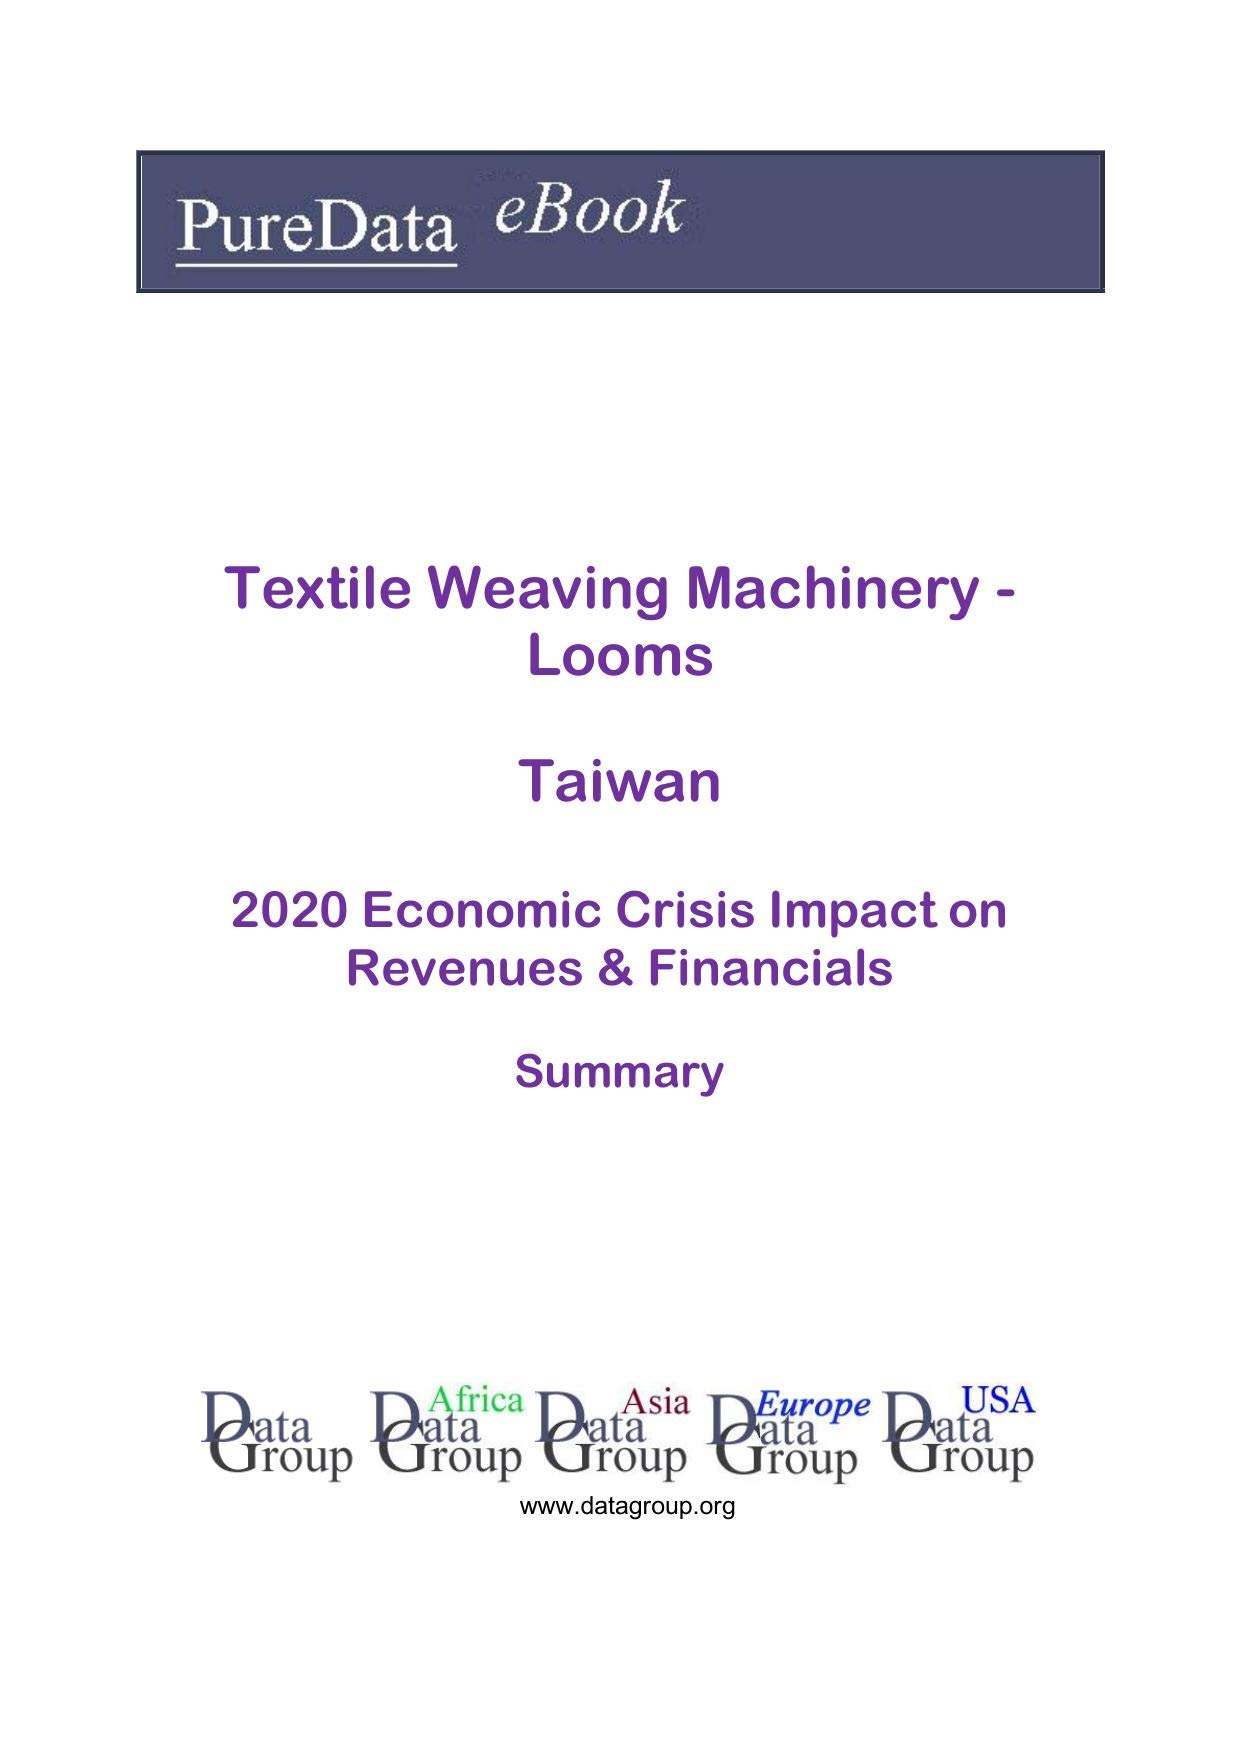 Textile Weaving Machinery - Looms Taiwan Summary: 2020 Economic Crisis Impact on Revenues & Financials